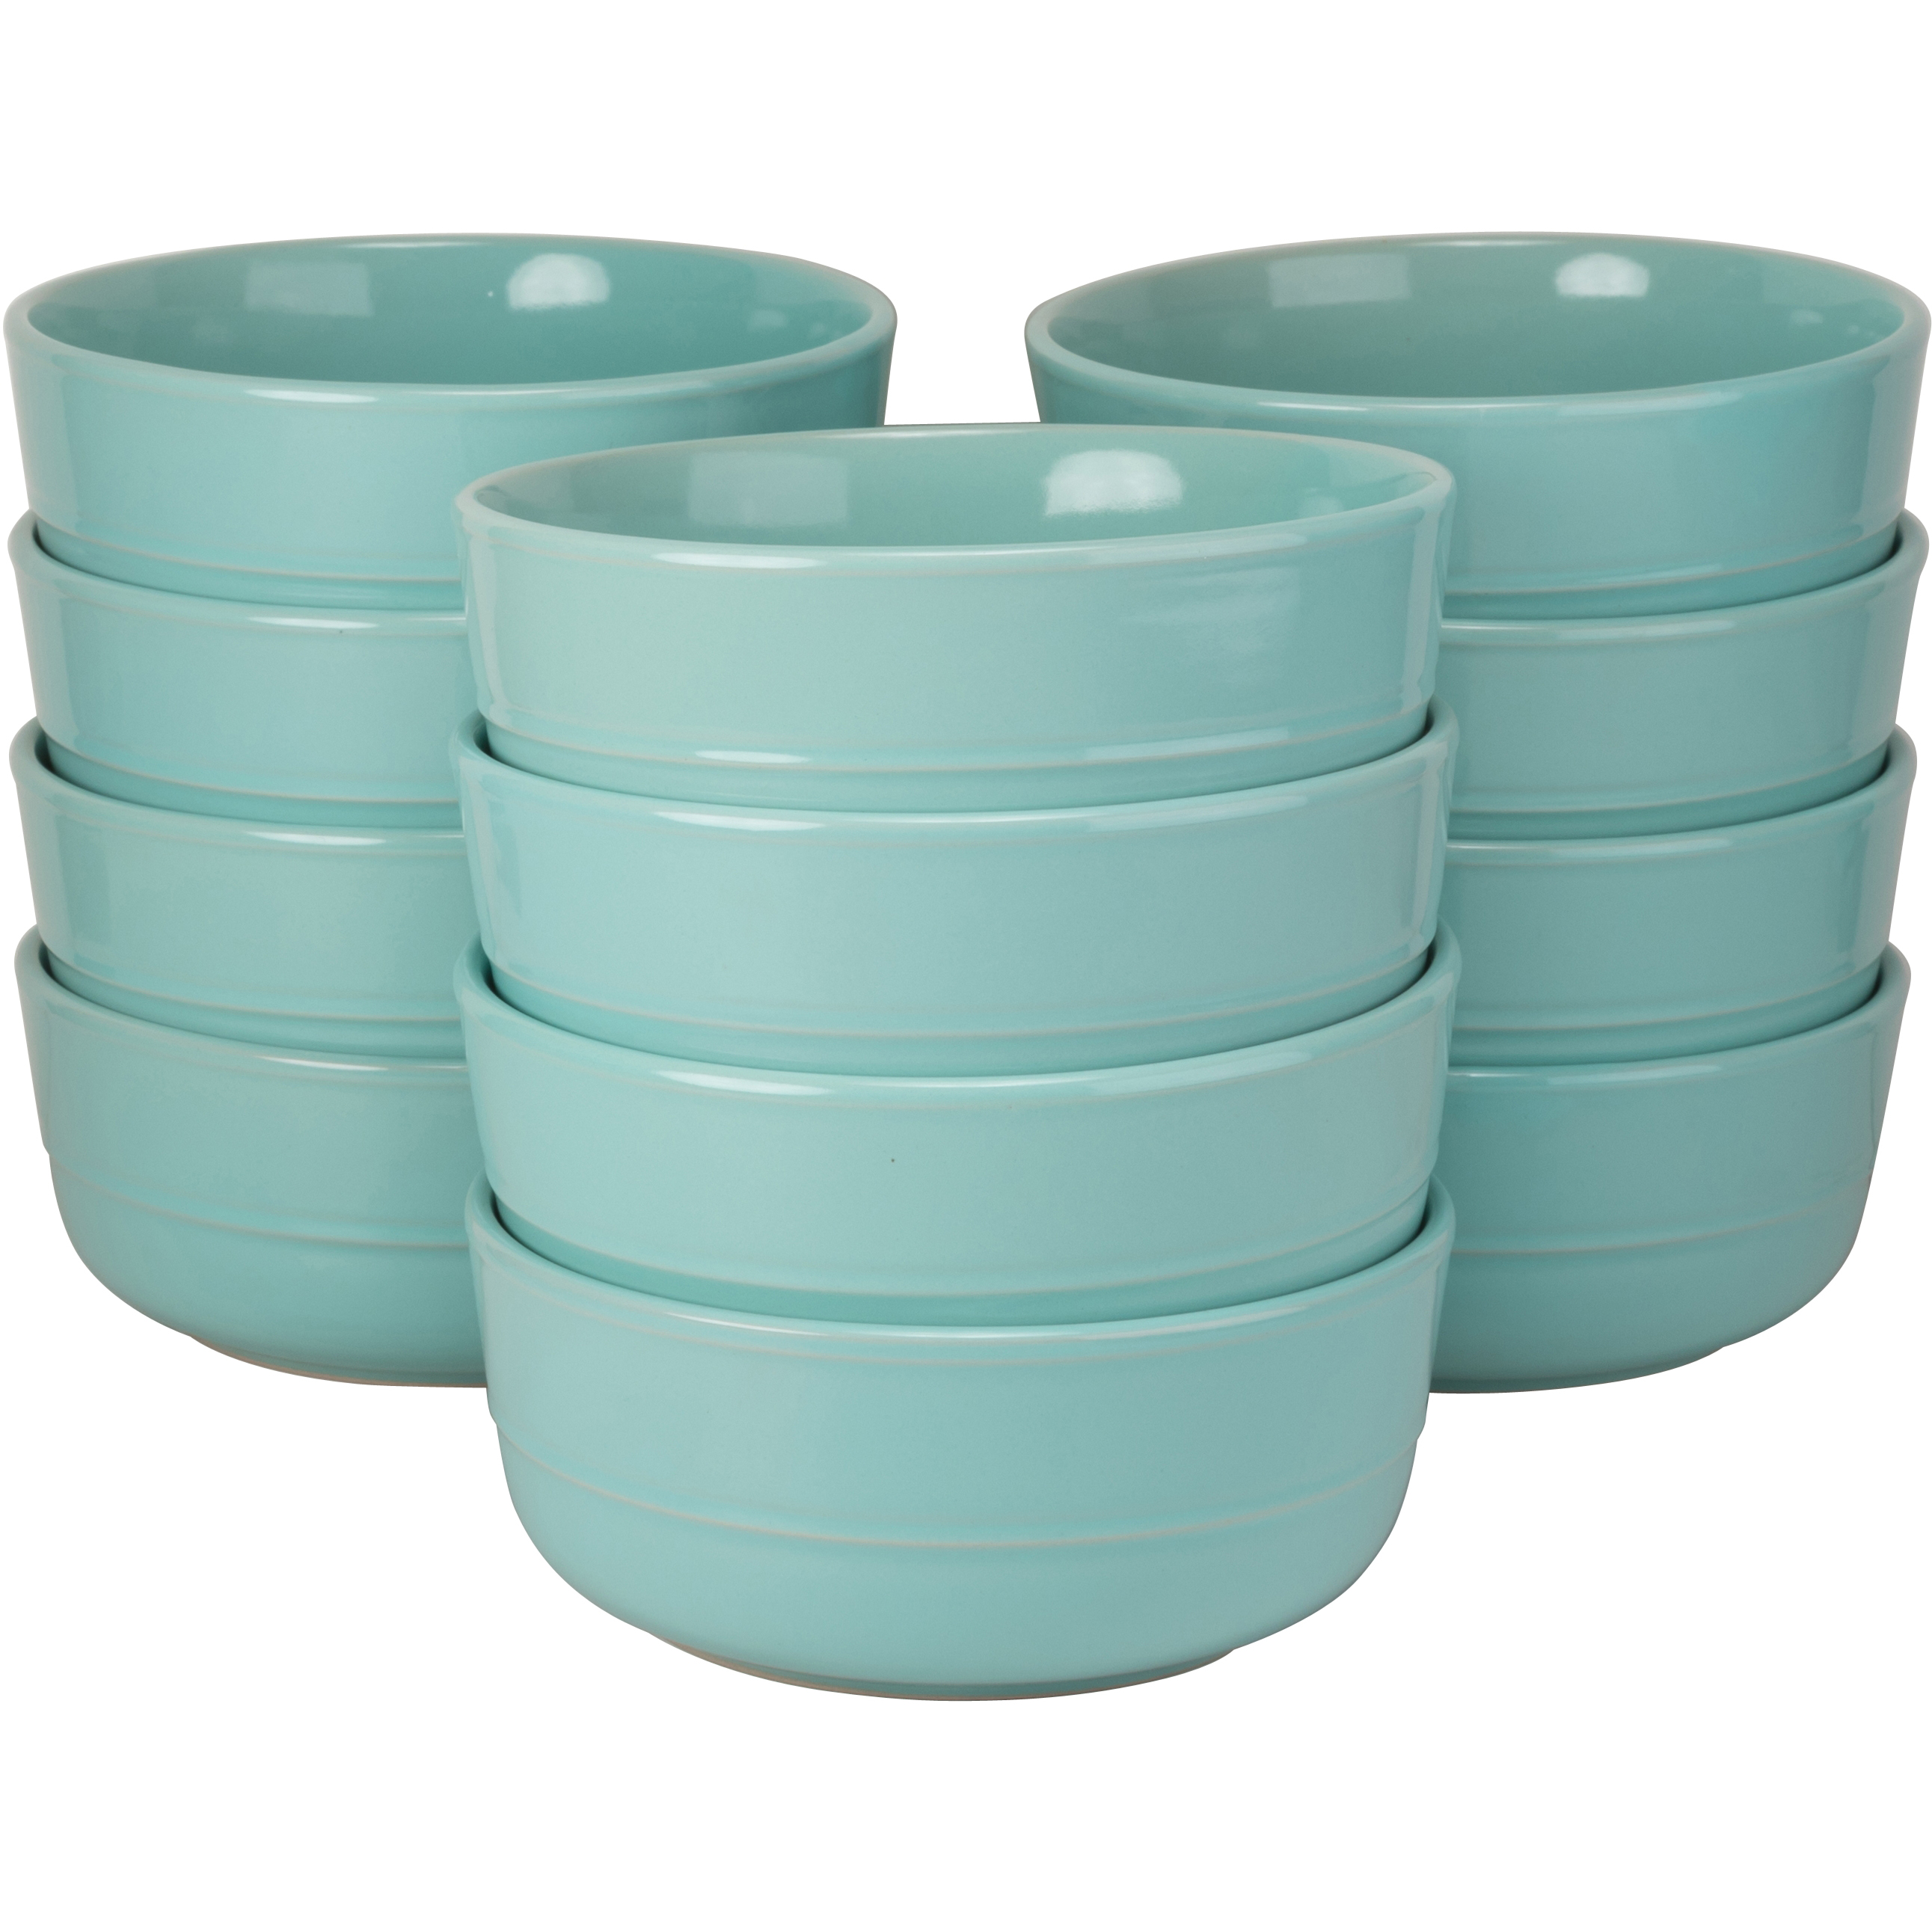 10 Strawberry Street Double Line Catering Pack Set 12 Seafoam Cereal Bowls 24 oz  sc 1 st  eBay & 10 Strawberry Street Double Line Catering Pack Set 12 Seafoam Cereal ...